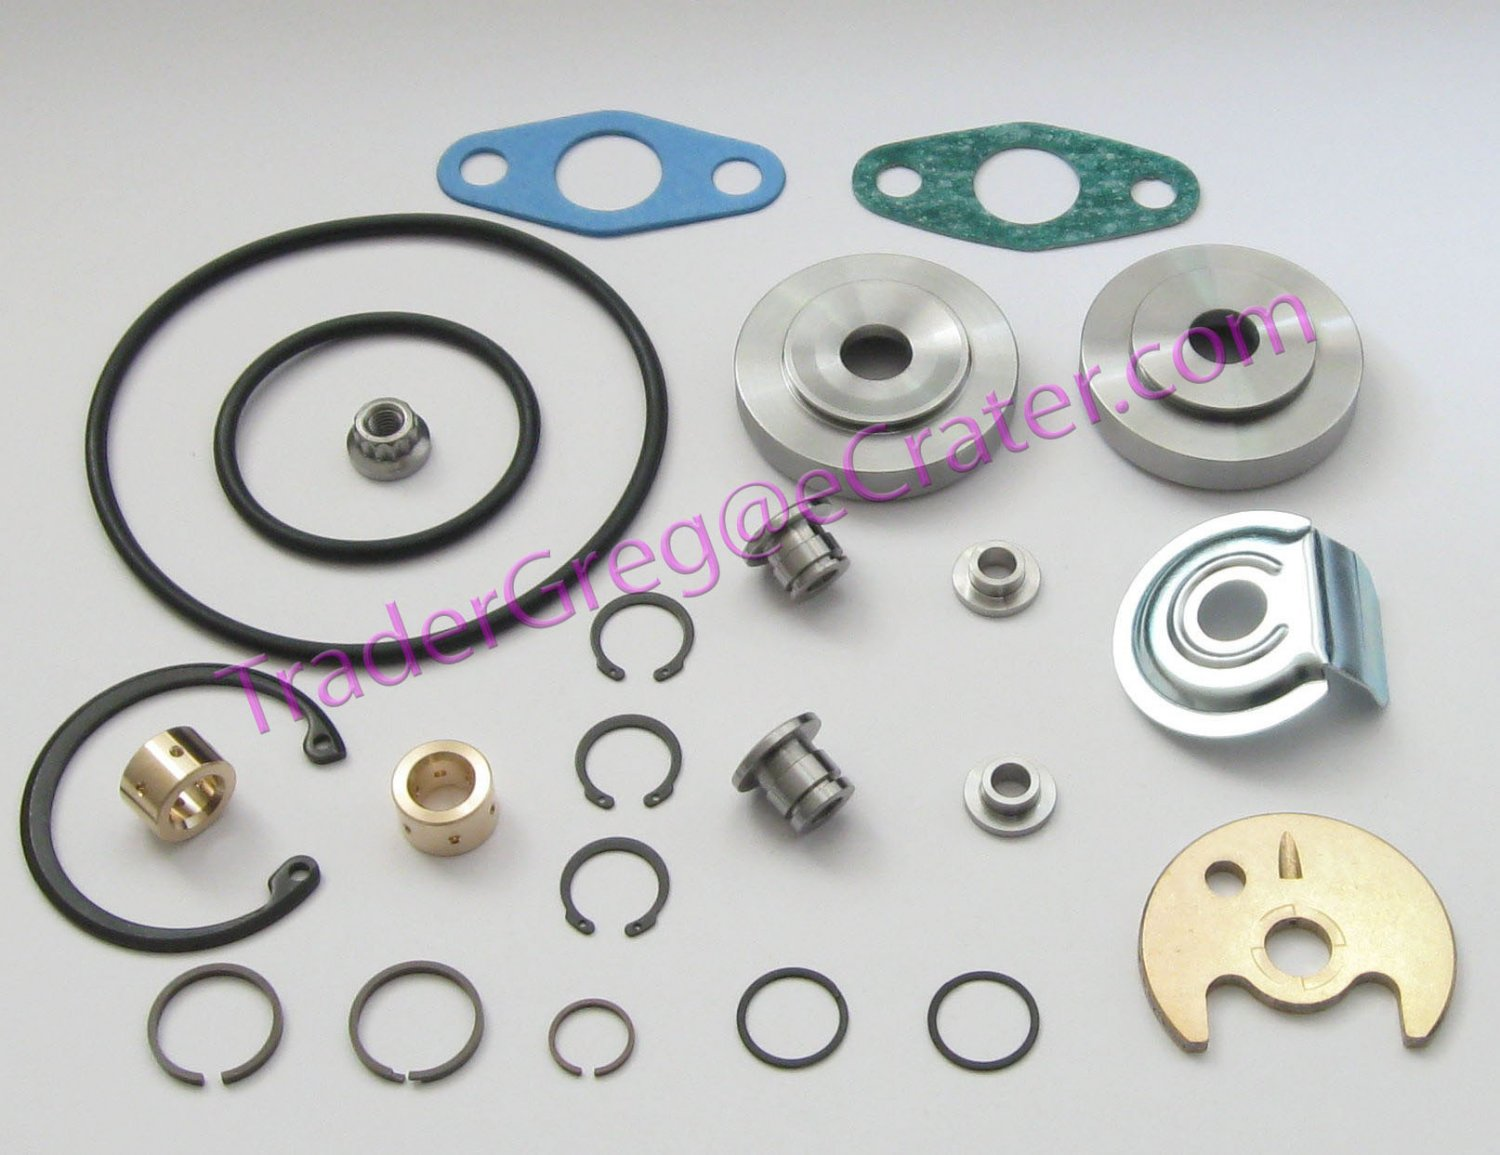 Mitsubishi Turbo TD04 TE04H TD04-H Turbocharger Rebuild Kit